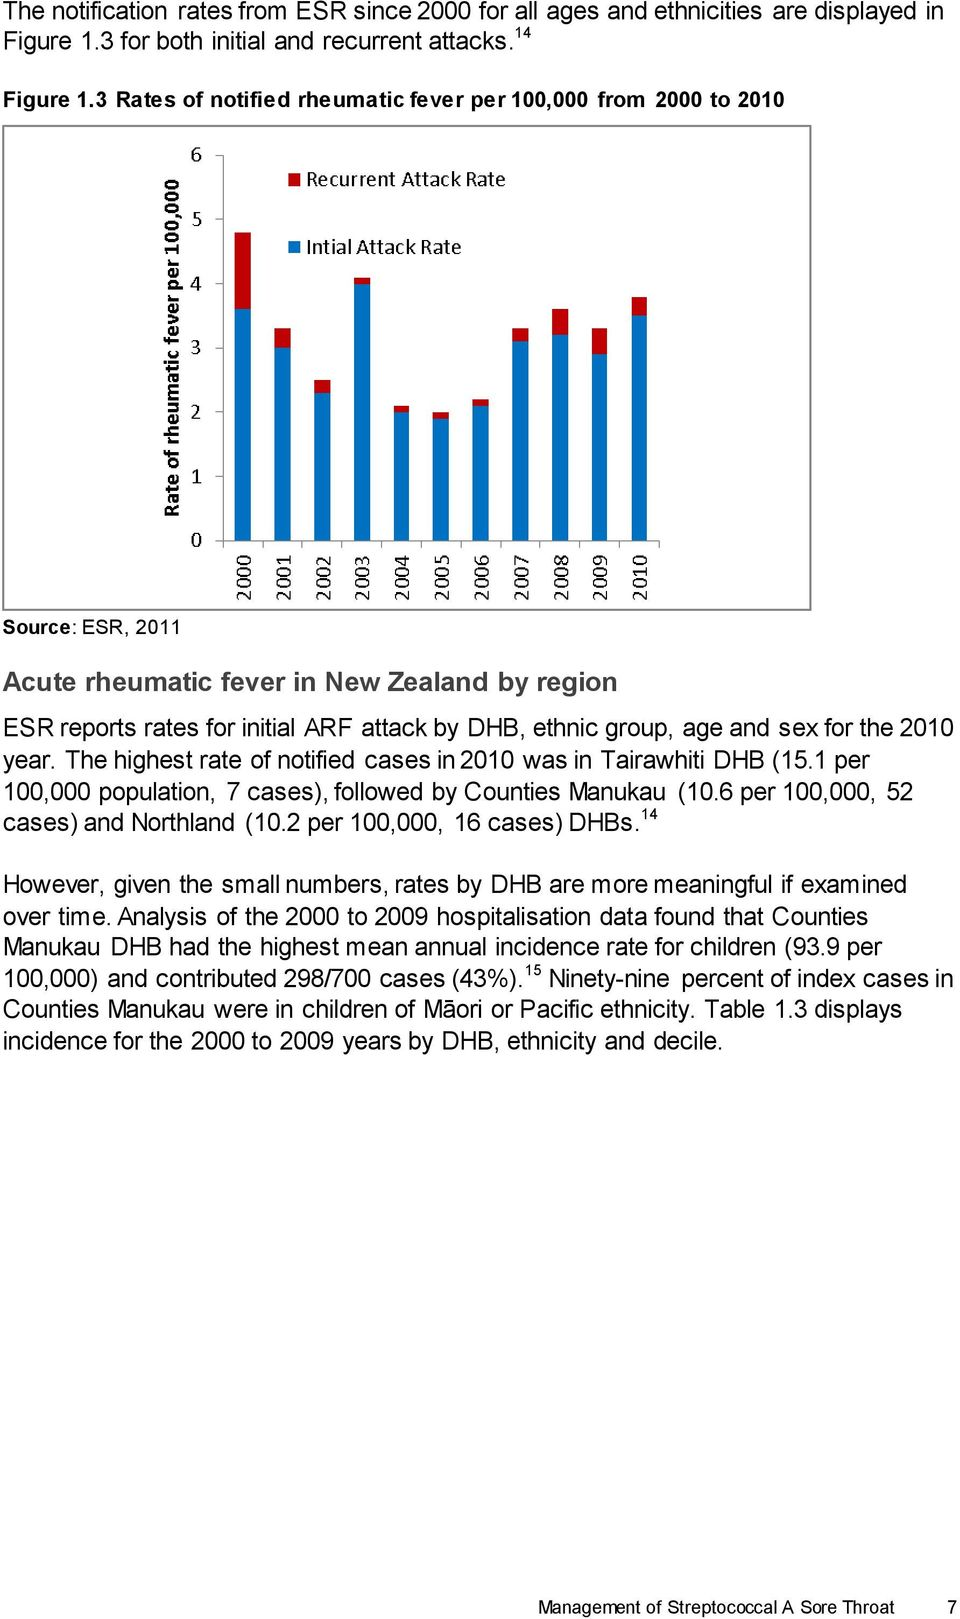 and sex for the 2010 year. The highest rate of notified cases in 2010 was in Tairawhiti DHB (15.1 per 100,000 population, 7 cases), followed by Counties Manukau (10.